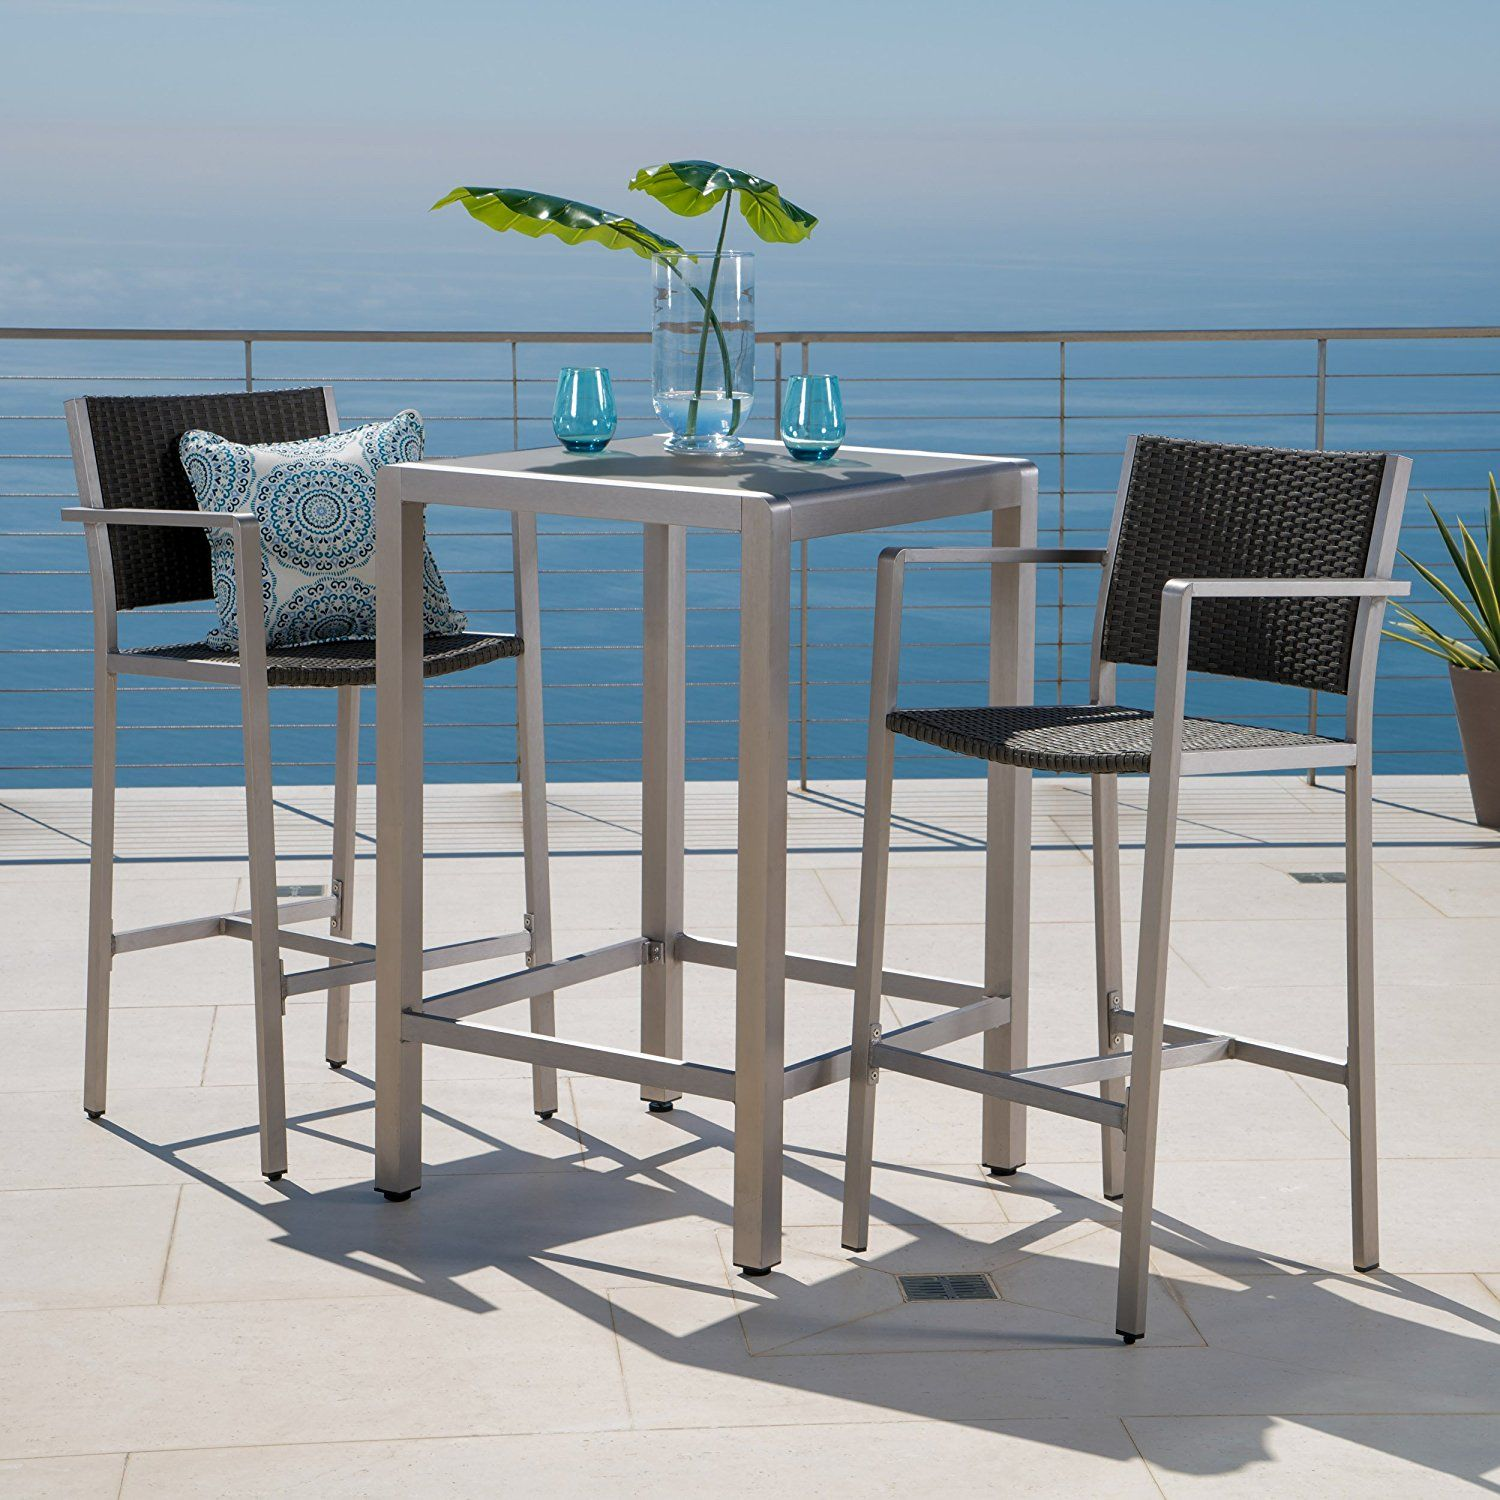 Amazon Crested Bay Patio Furniture 3 Piece Grey Outdoor